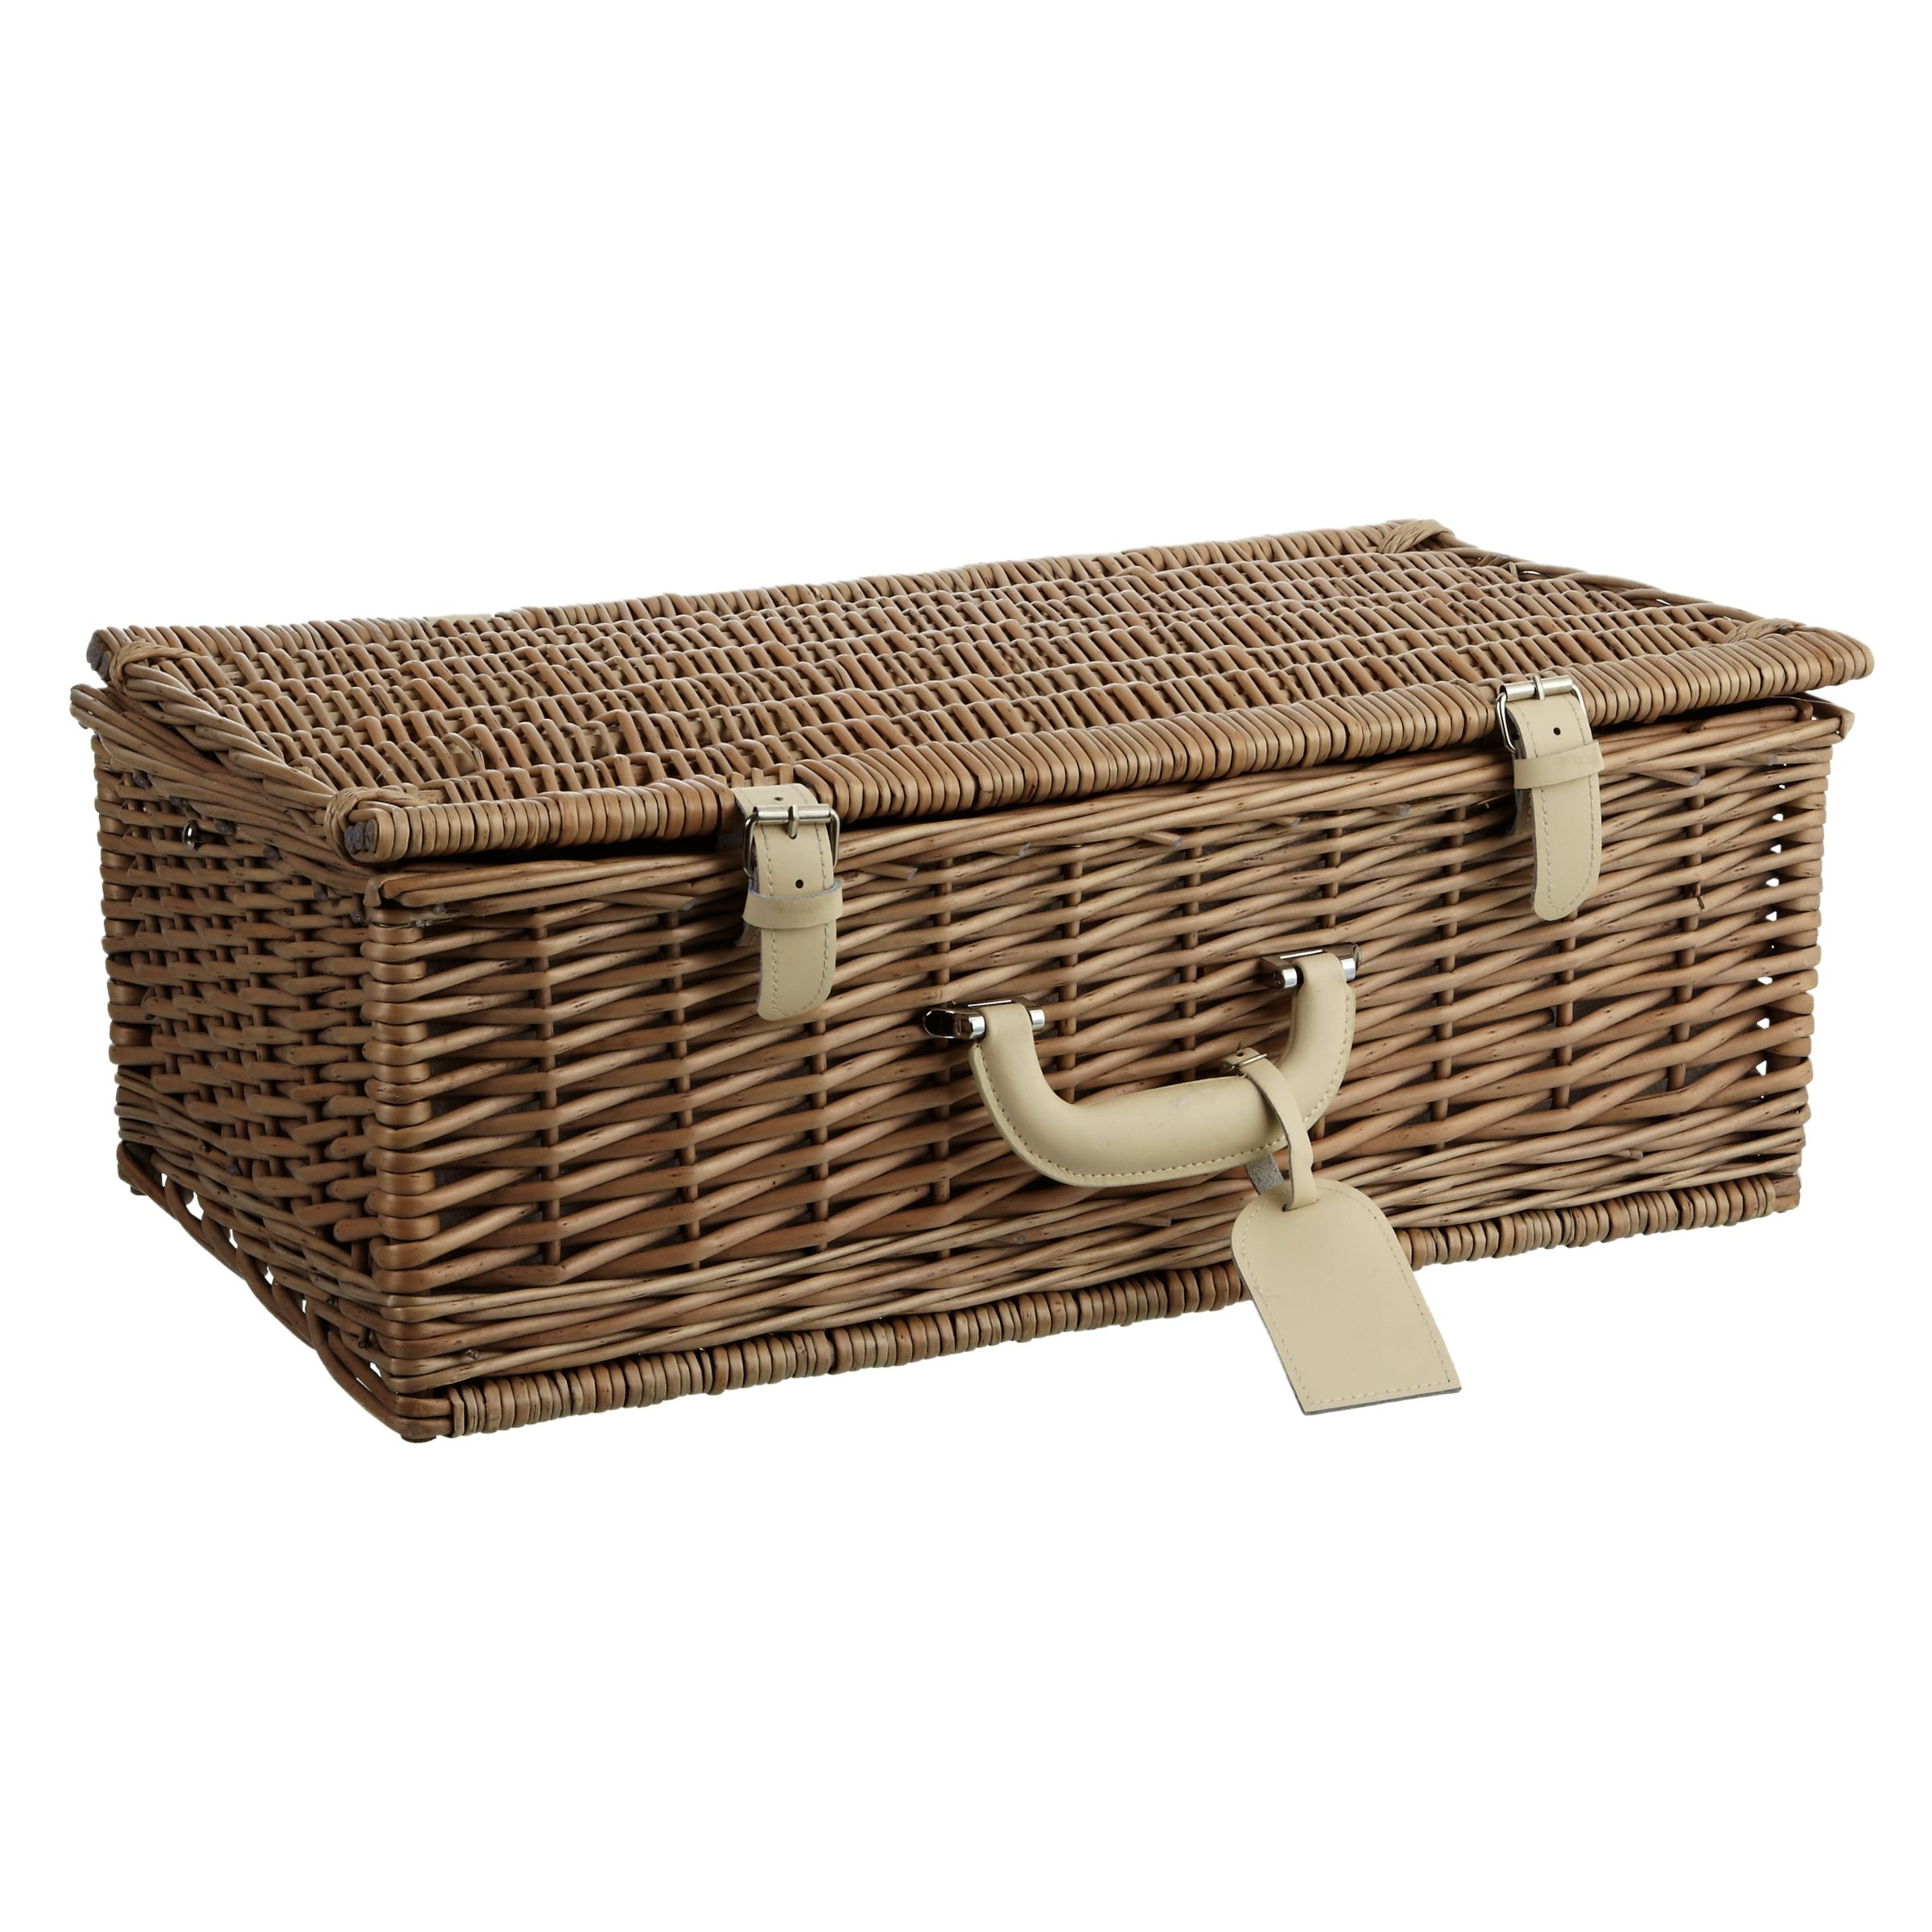 John Lewis 150 Years Filled Hamper, 4 Persons